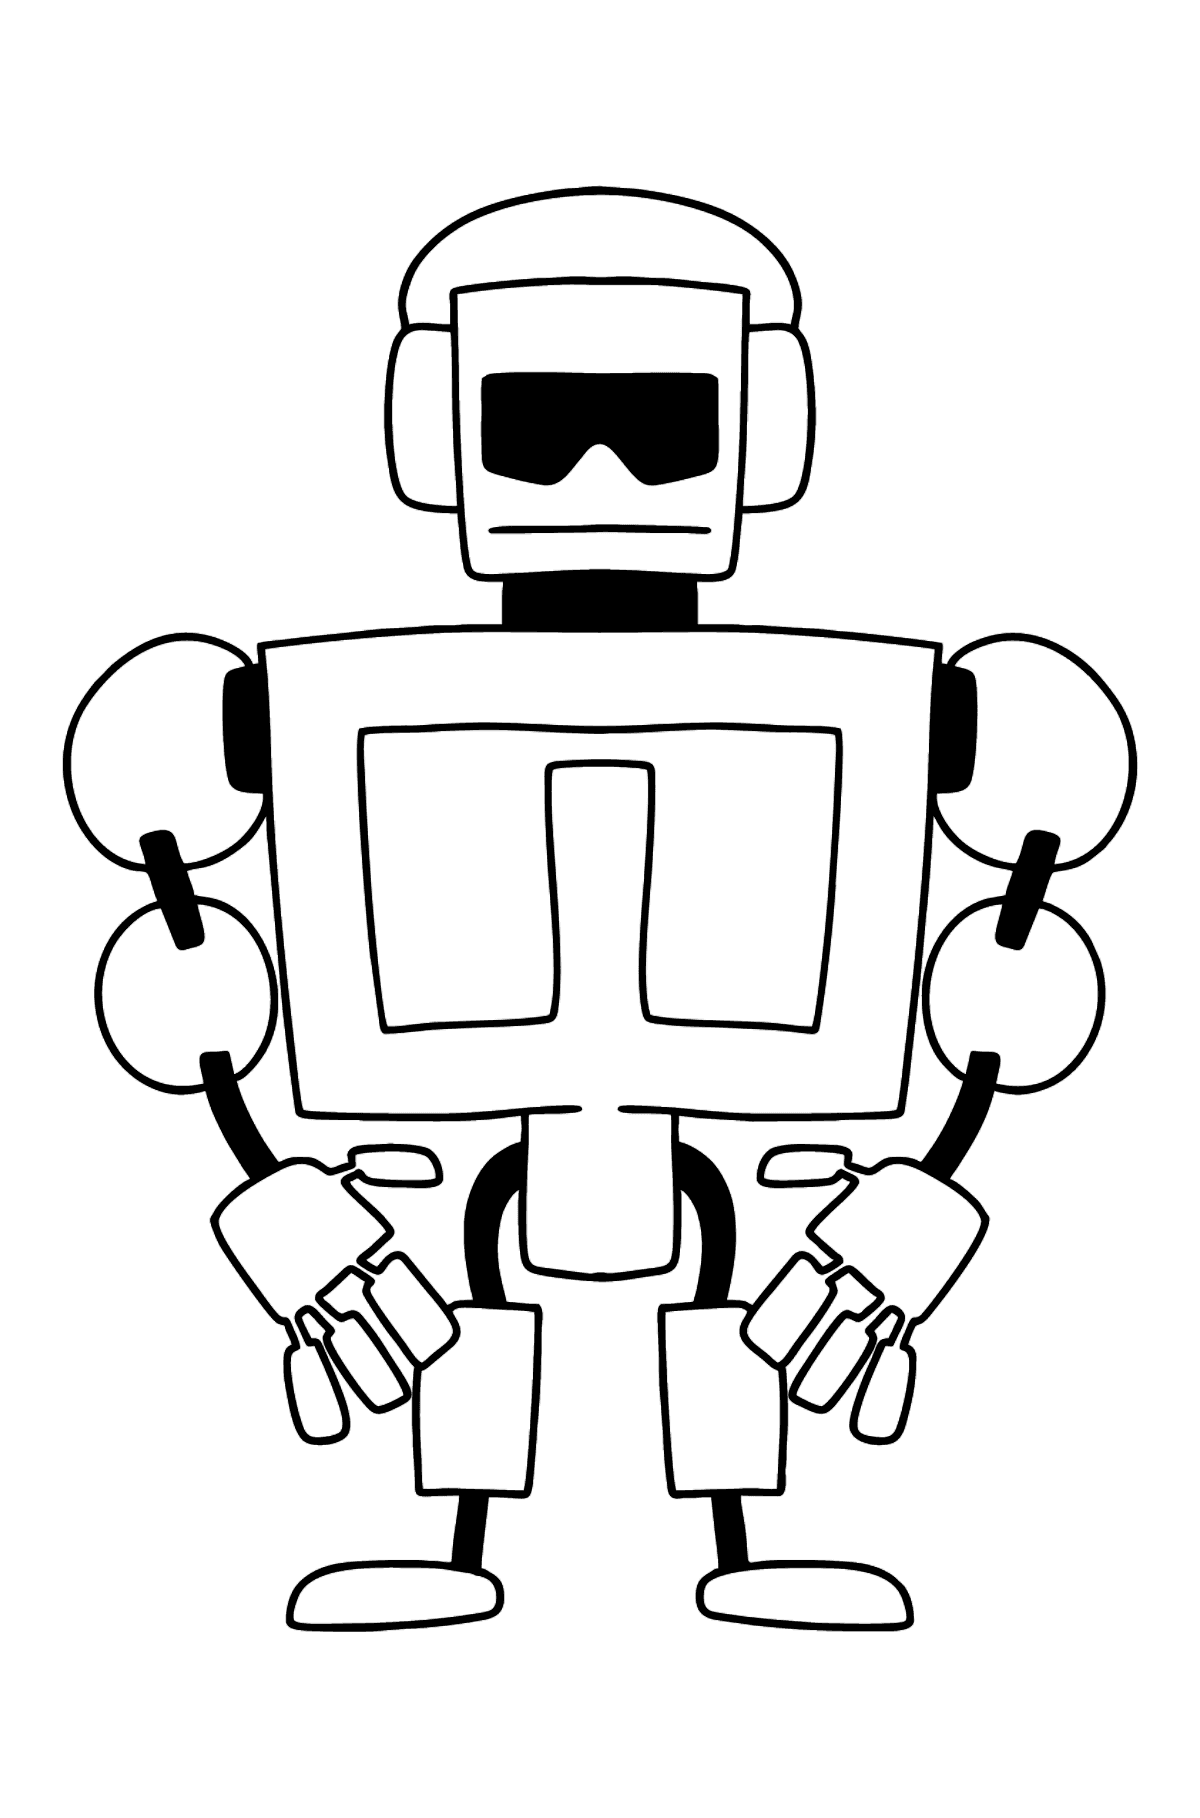 Robot Bodybuilder coloring page - Coloring Pages for Kids